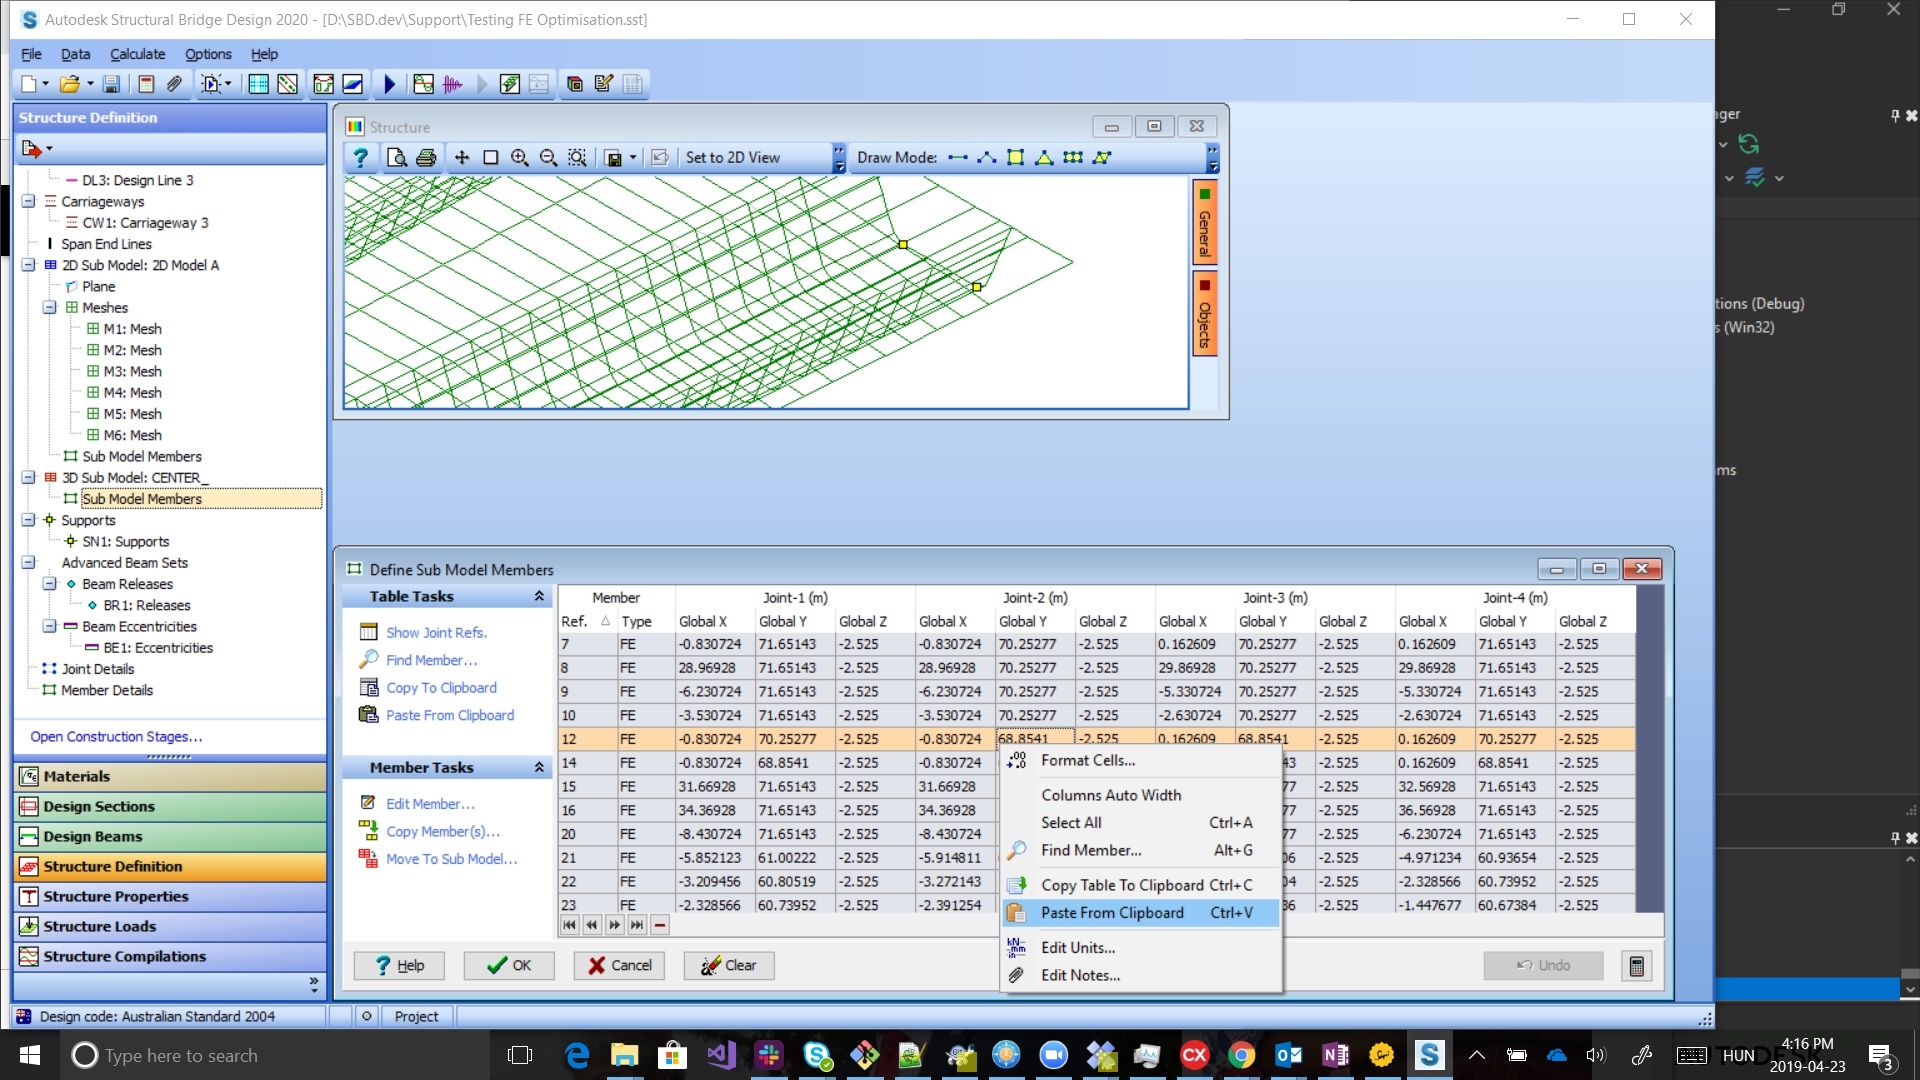 Solved: export from revit to autodesk structural bridge